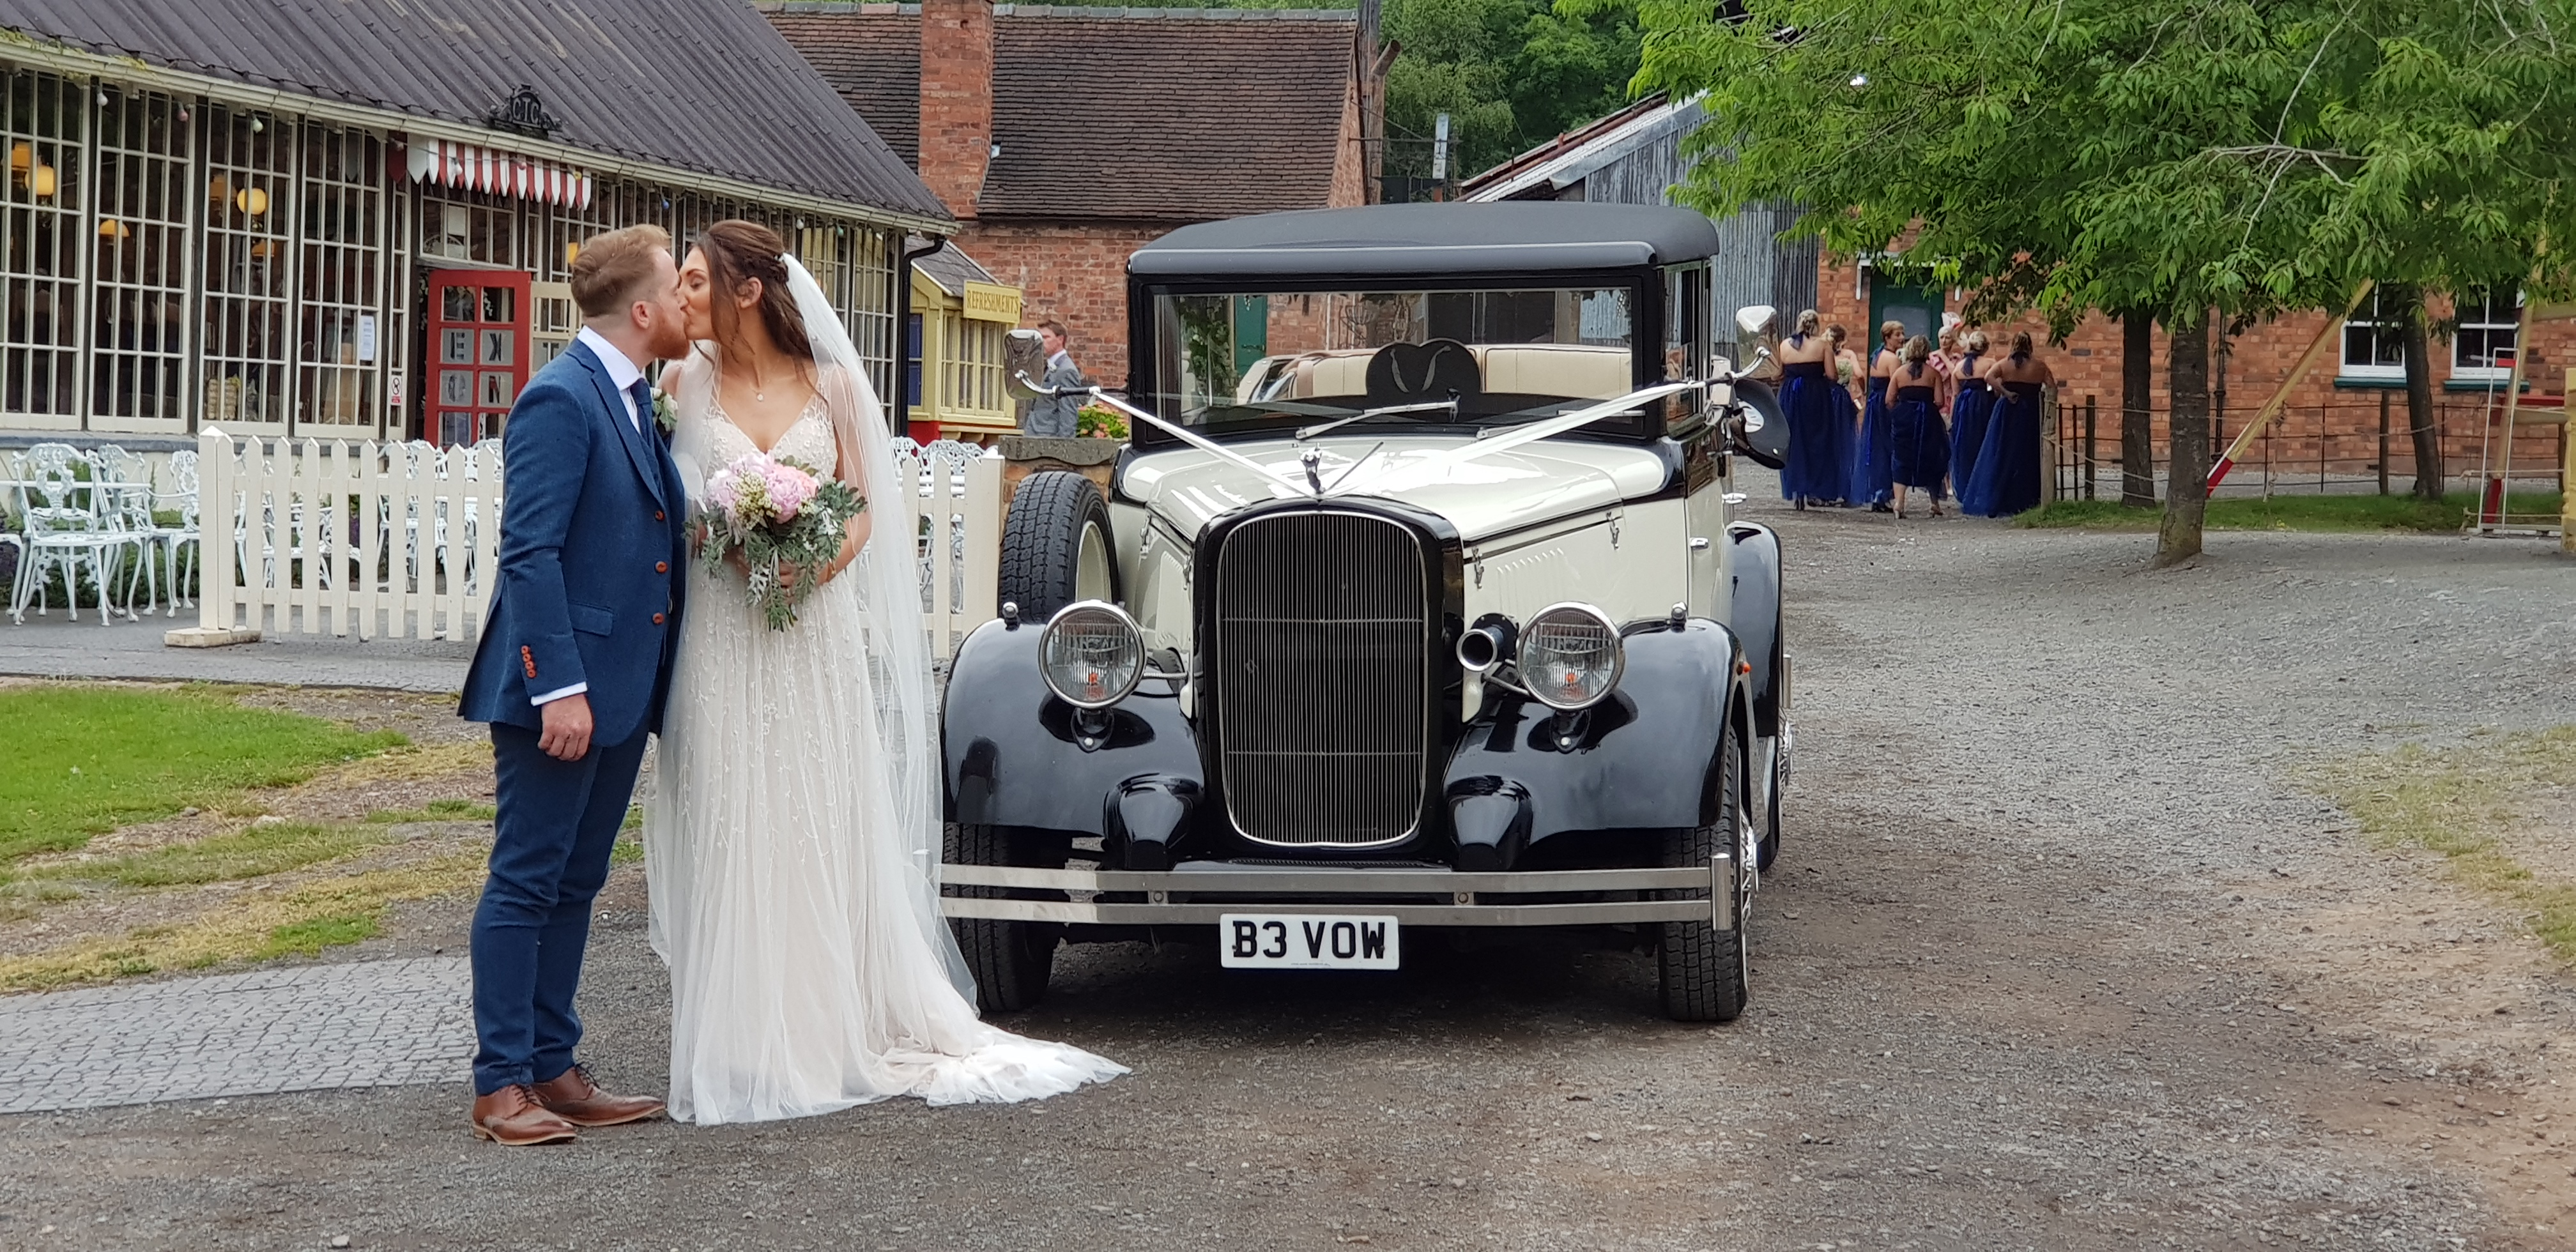 Wedding car hire ironbridge.